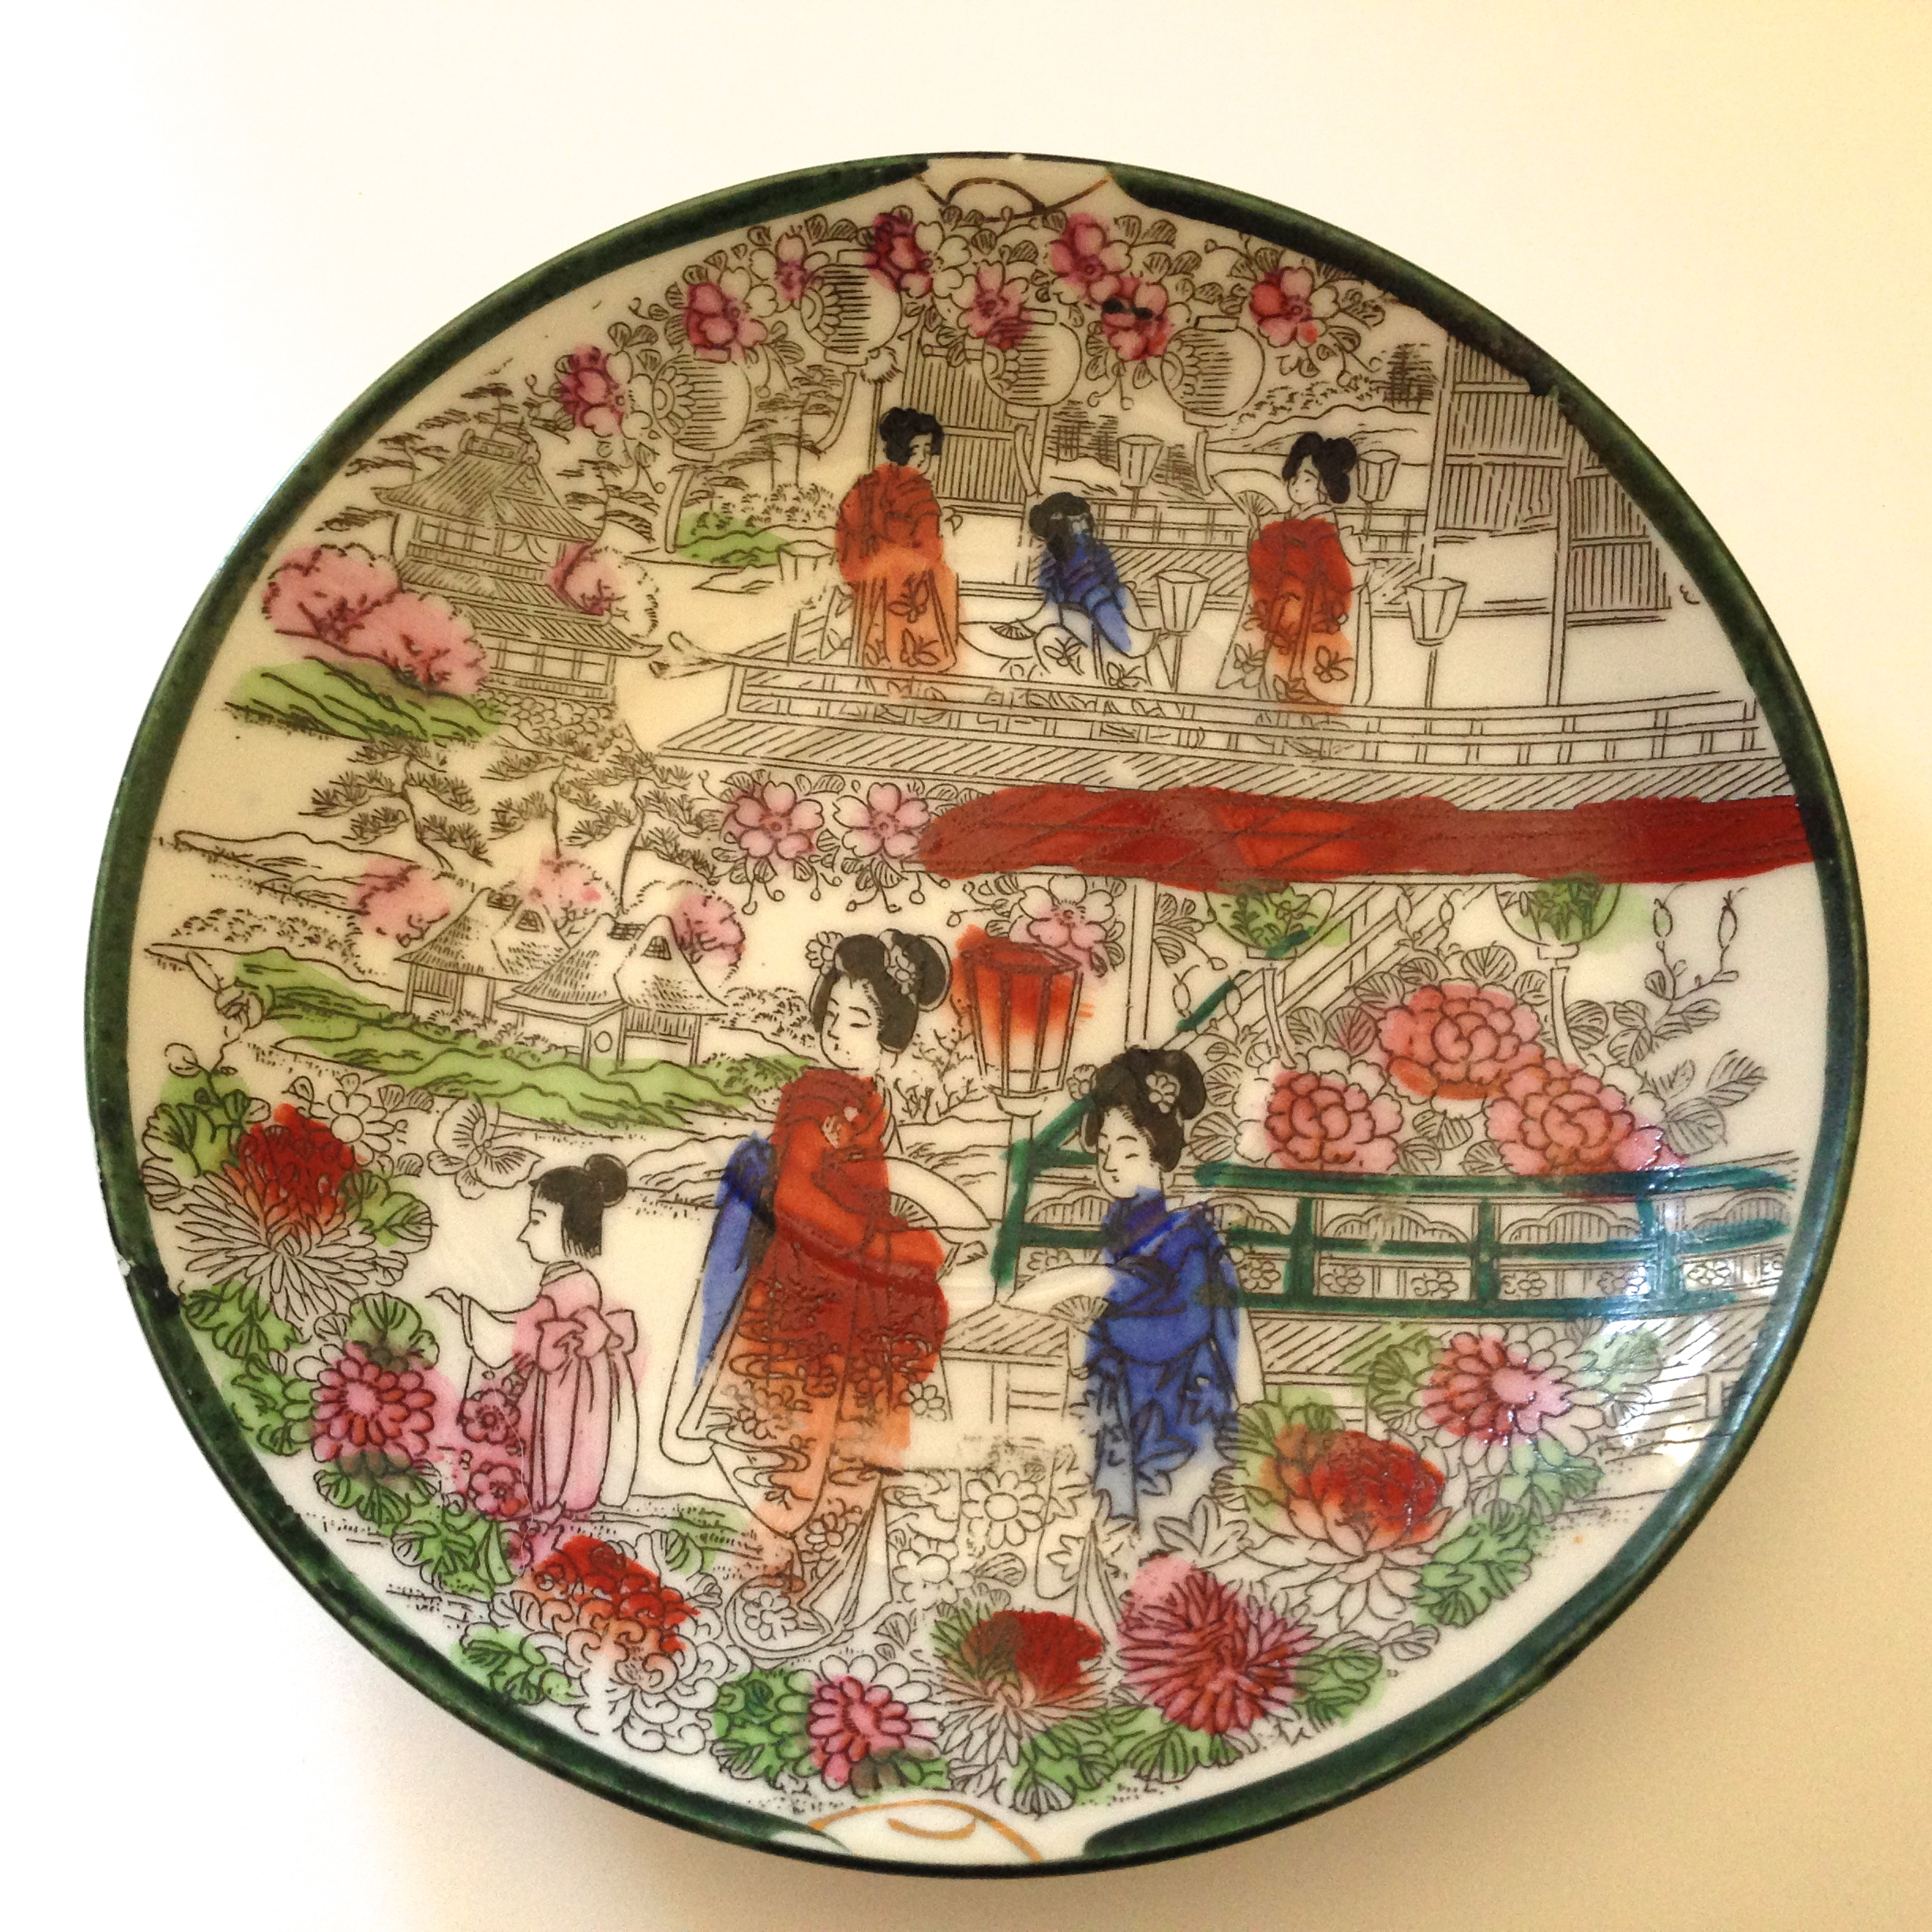 Culver Glass  pany Lavish And together with Camden Stables Market additionally Hollywood Golden Age Milton Krasner Archive Auctioned as well 1167614 Wheels Classic Cars Standard Vanguard likewise Geisha Girl Porcelain The Affordable Vintage Collectible. on antiques of the 1950s